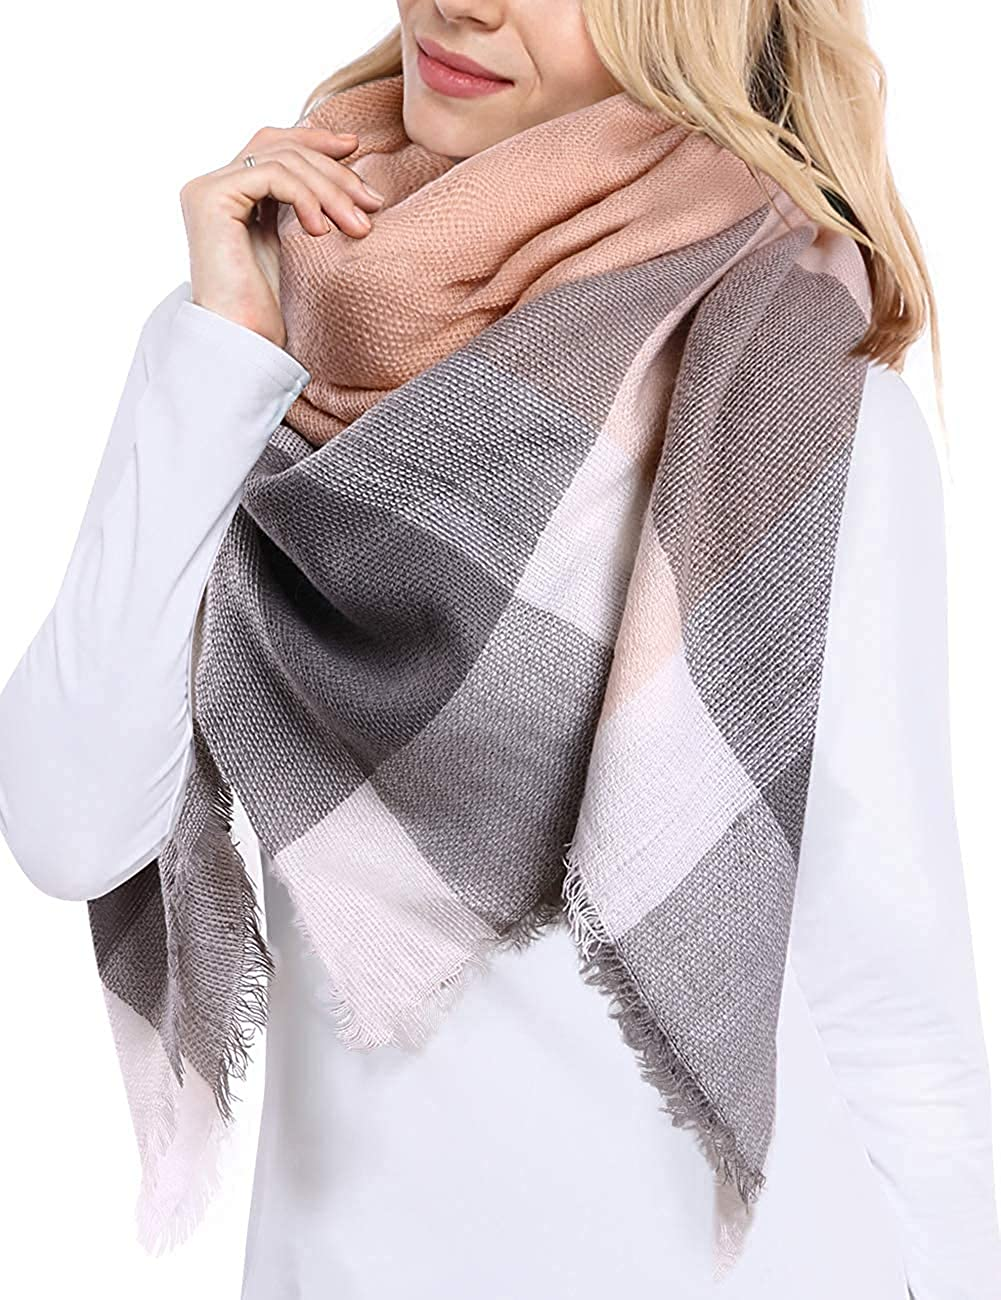 Blanket Women's Scarf Cashmere Scarf MKLP Scarf Tassel Scarf Winter Ladies Scarf Large Warm Shawl Plaid Scarf Large Shawl Keep Warm and Prevent Cold For Women